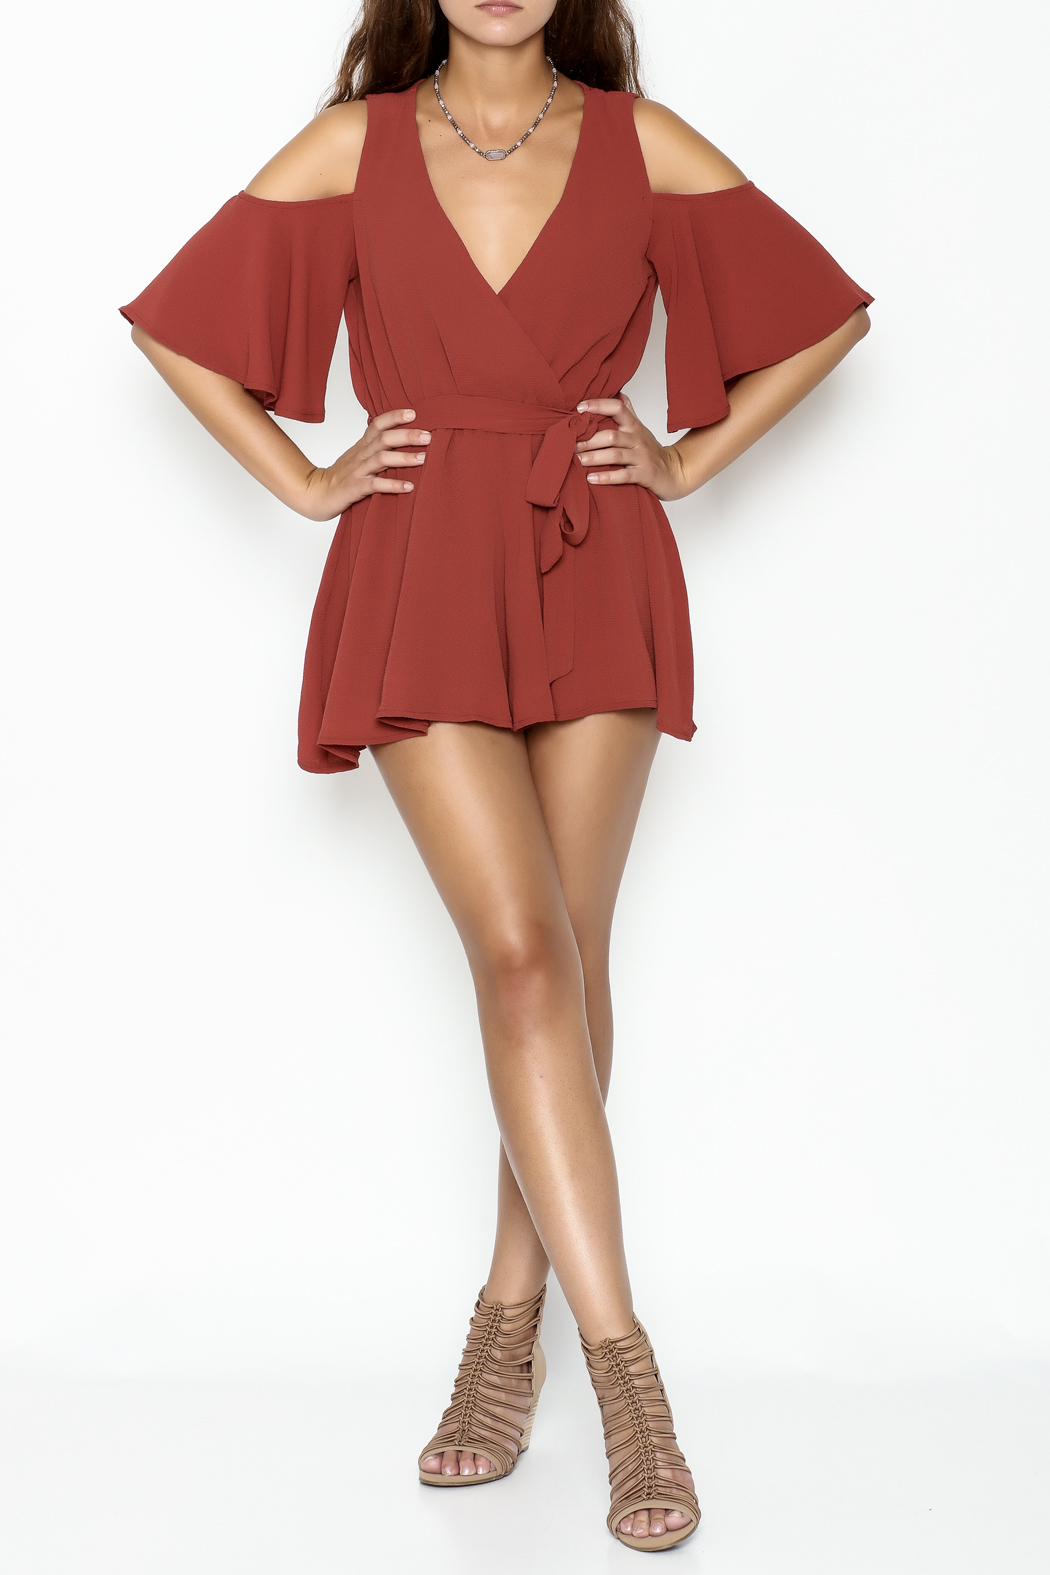 luxxel Open Shoulder Romper - Side Cropped Image